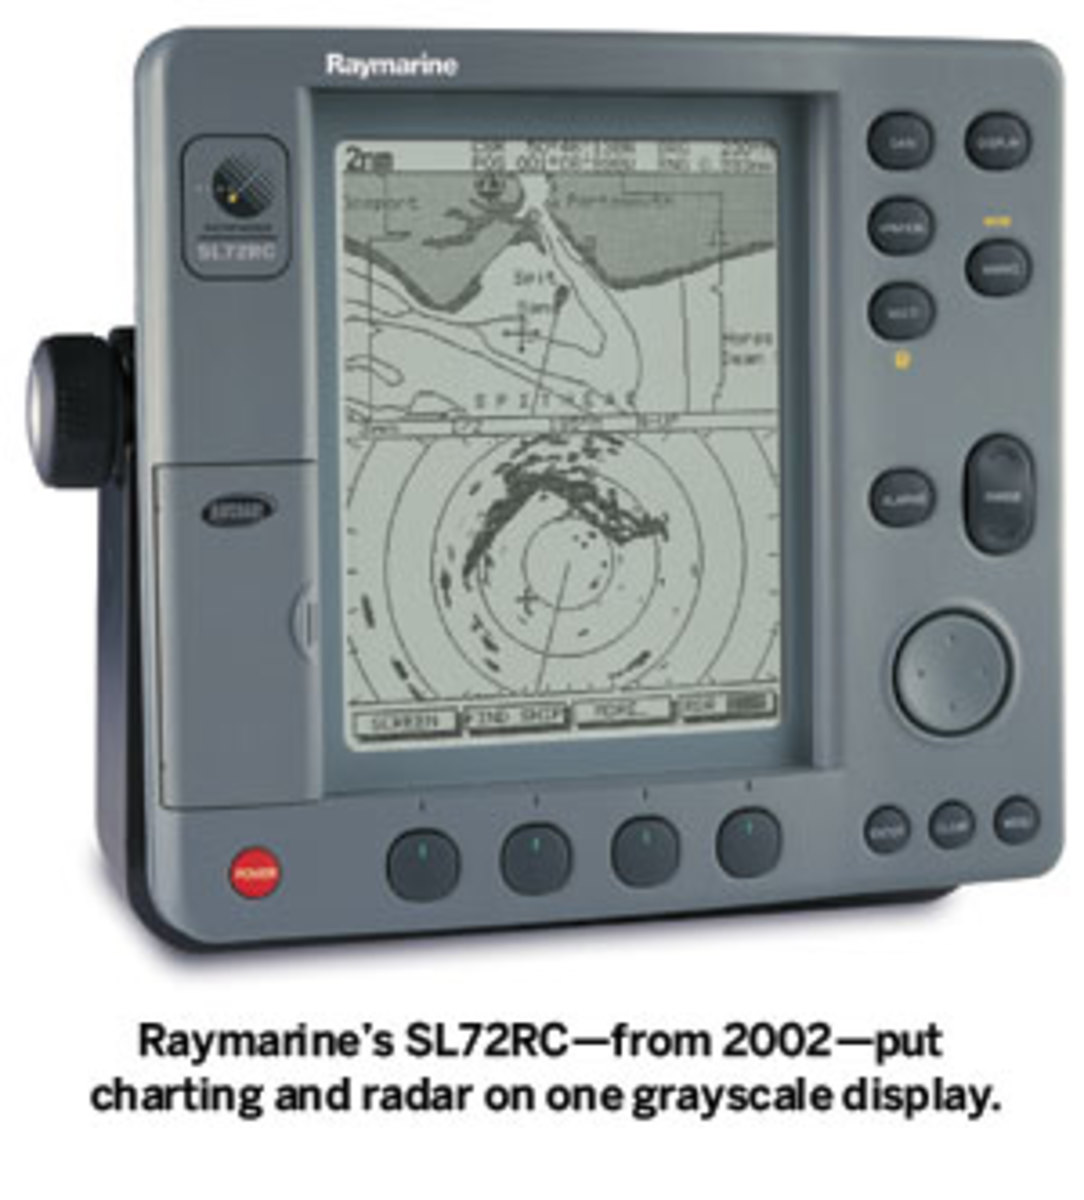 Raymarine's SL72RC—from 2002—put charting and radar on one grayscale display.